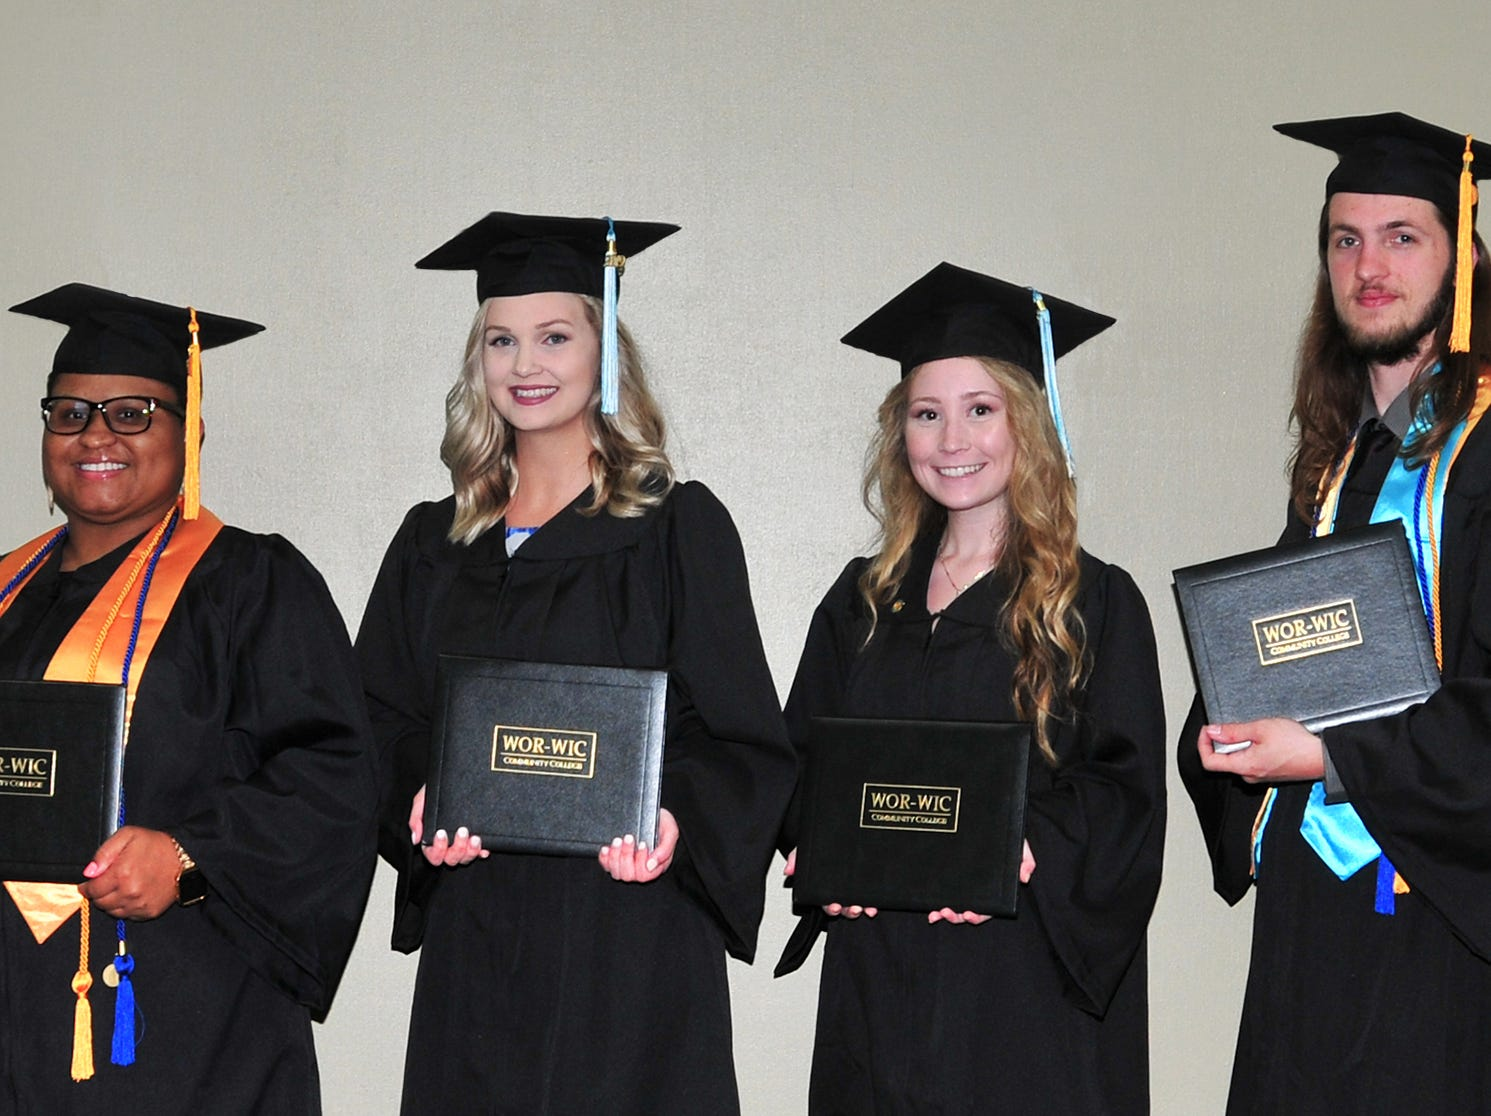 Russell W. Blake of Pocomoke City, vice chairman of the board of trustees at Wor-Wic Community College, congratulates some of the graduates from southern Worcester County who received their associate degrees. From left, next to Blake, are April Powell, Madison Parks, Rachel Richardson and Mitchell Krystoflak.